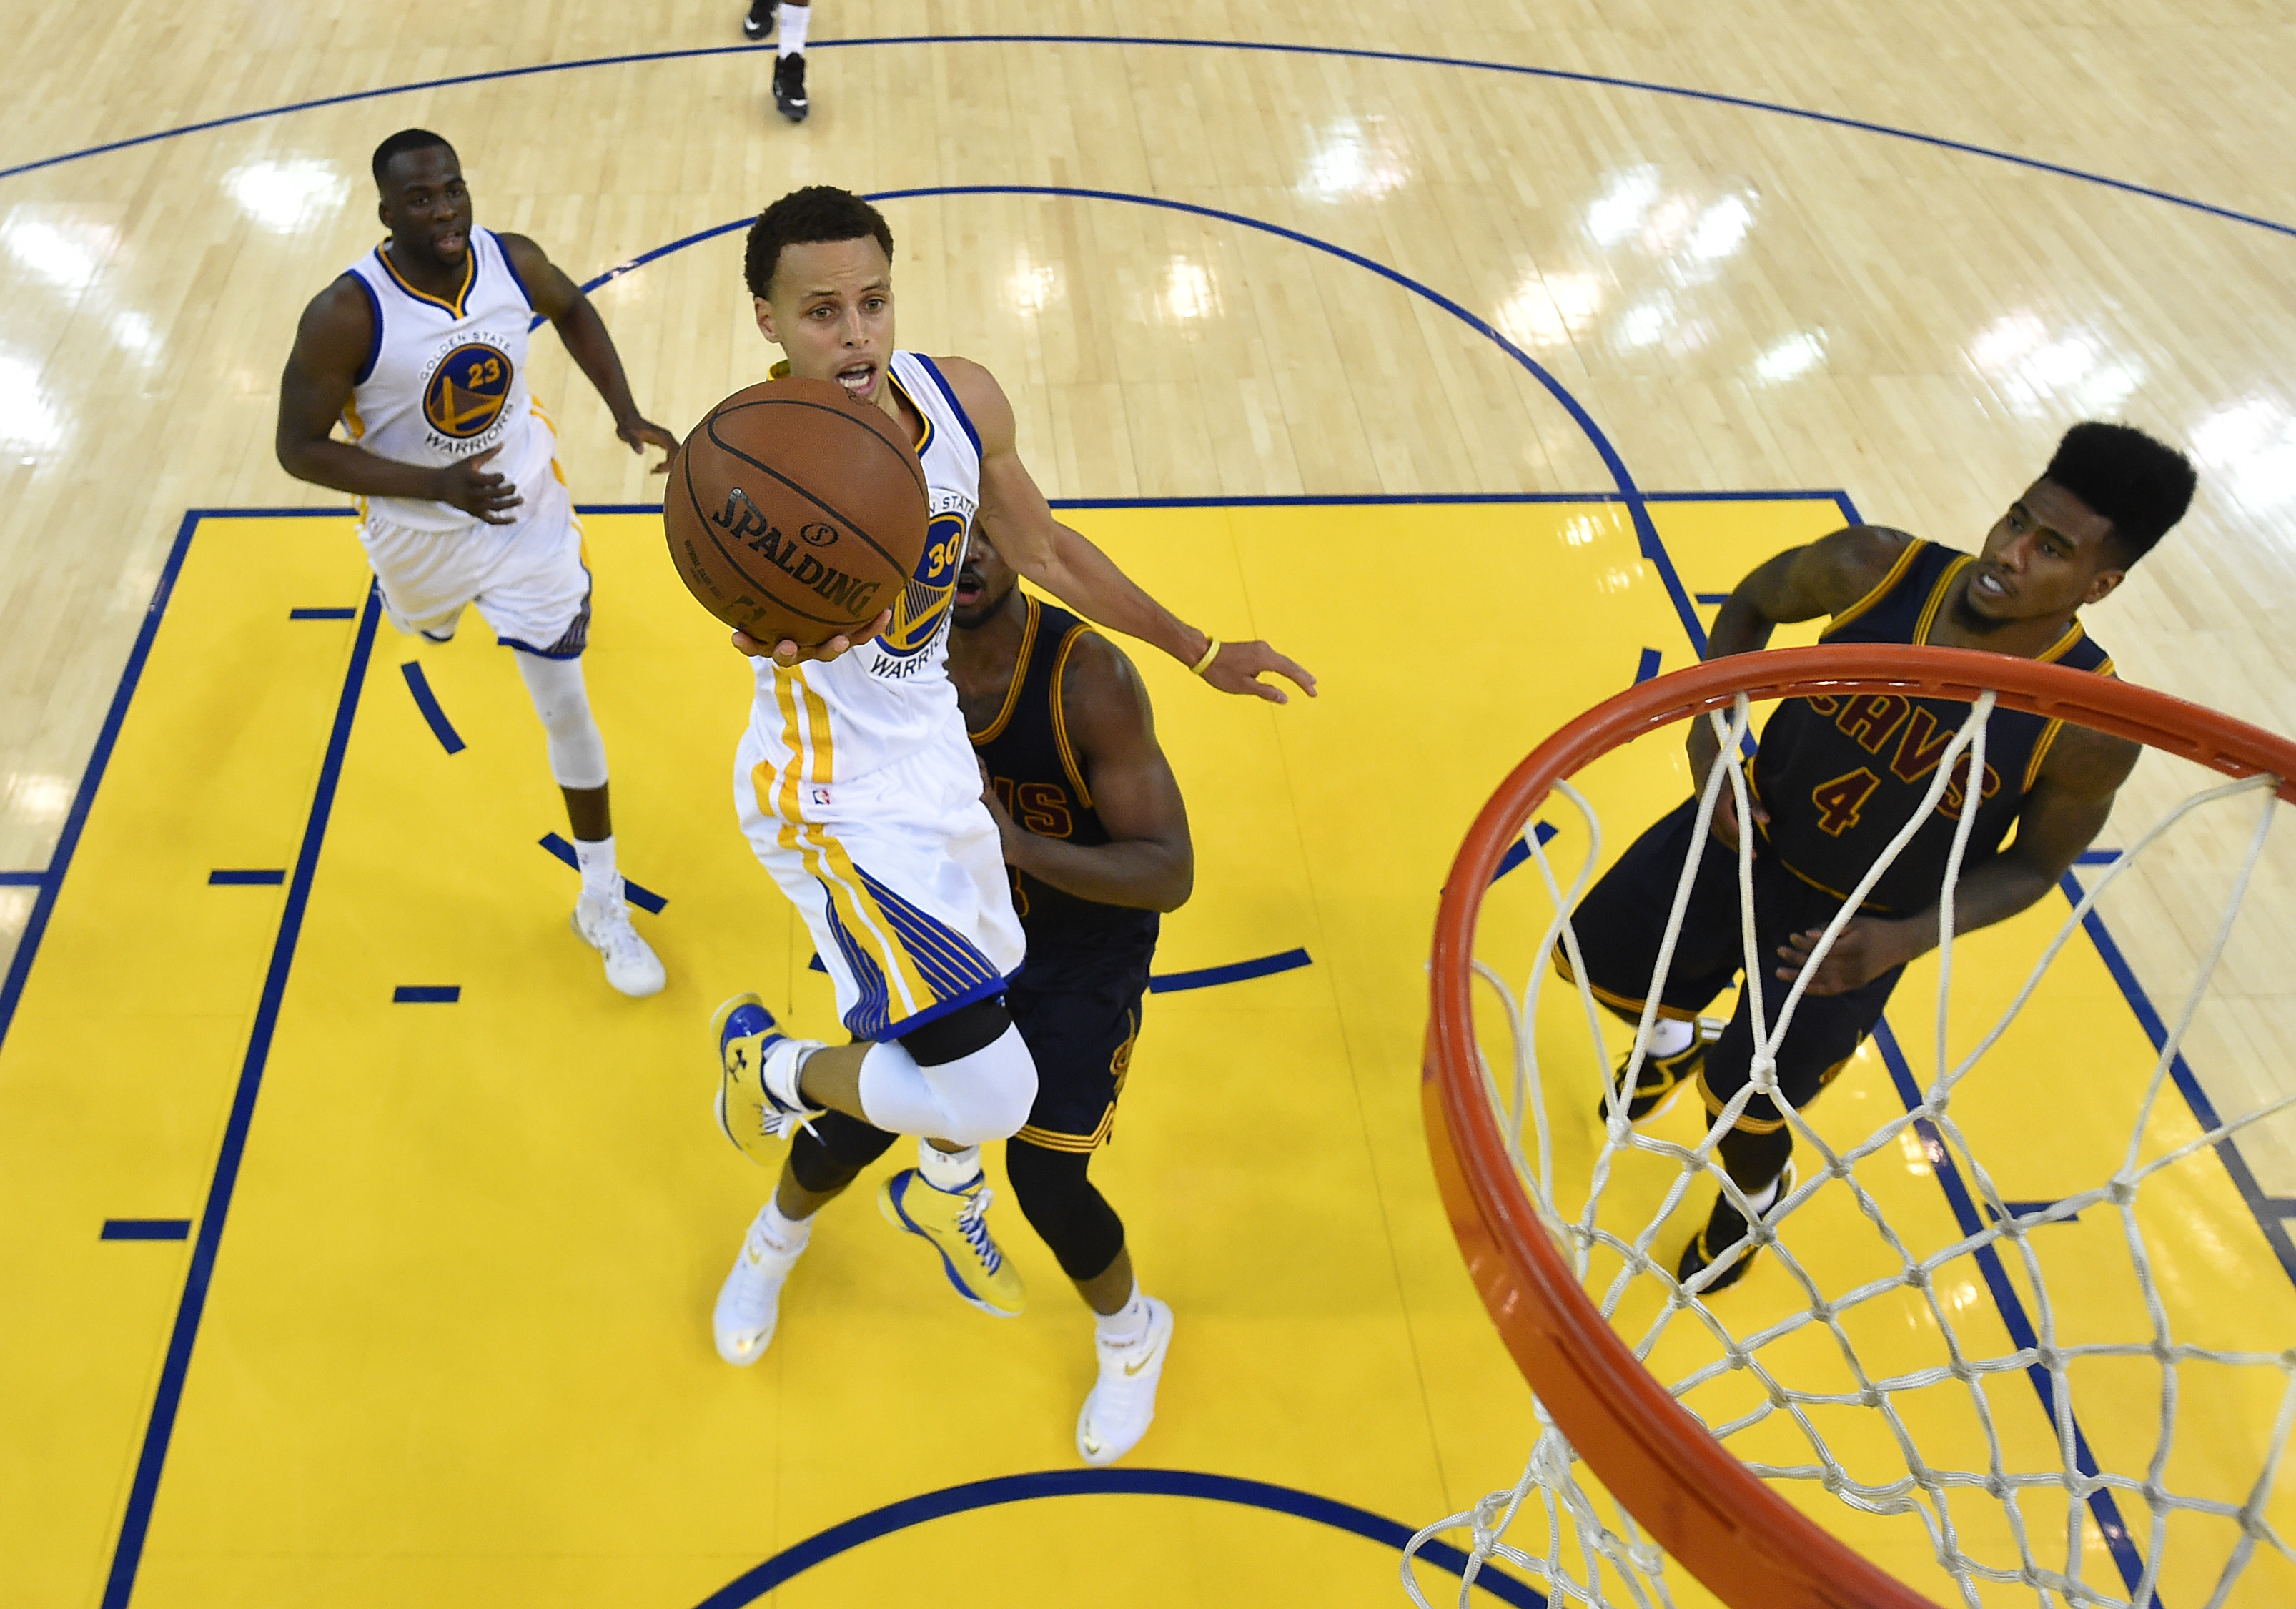 Steph Curry will look to shake off a forgettable game 2 performance